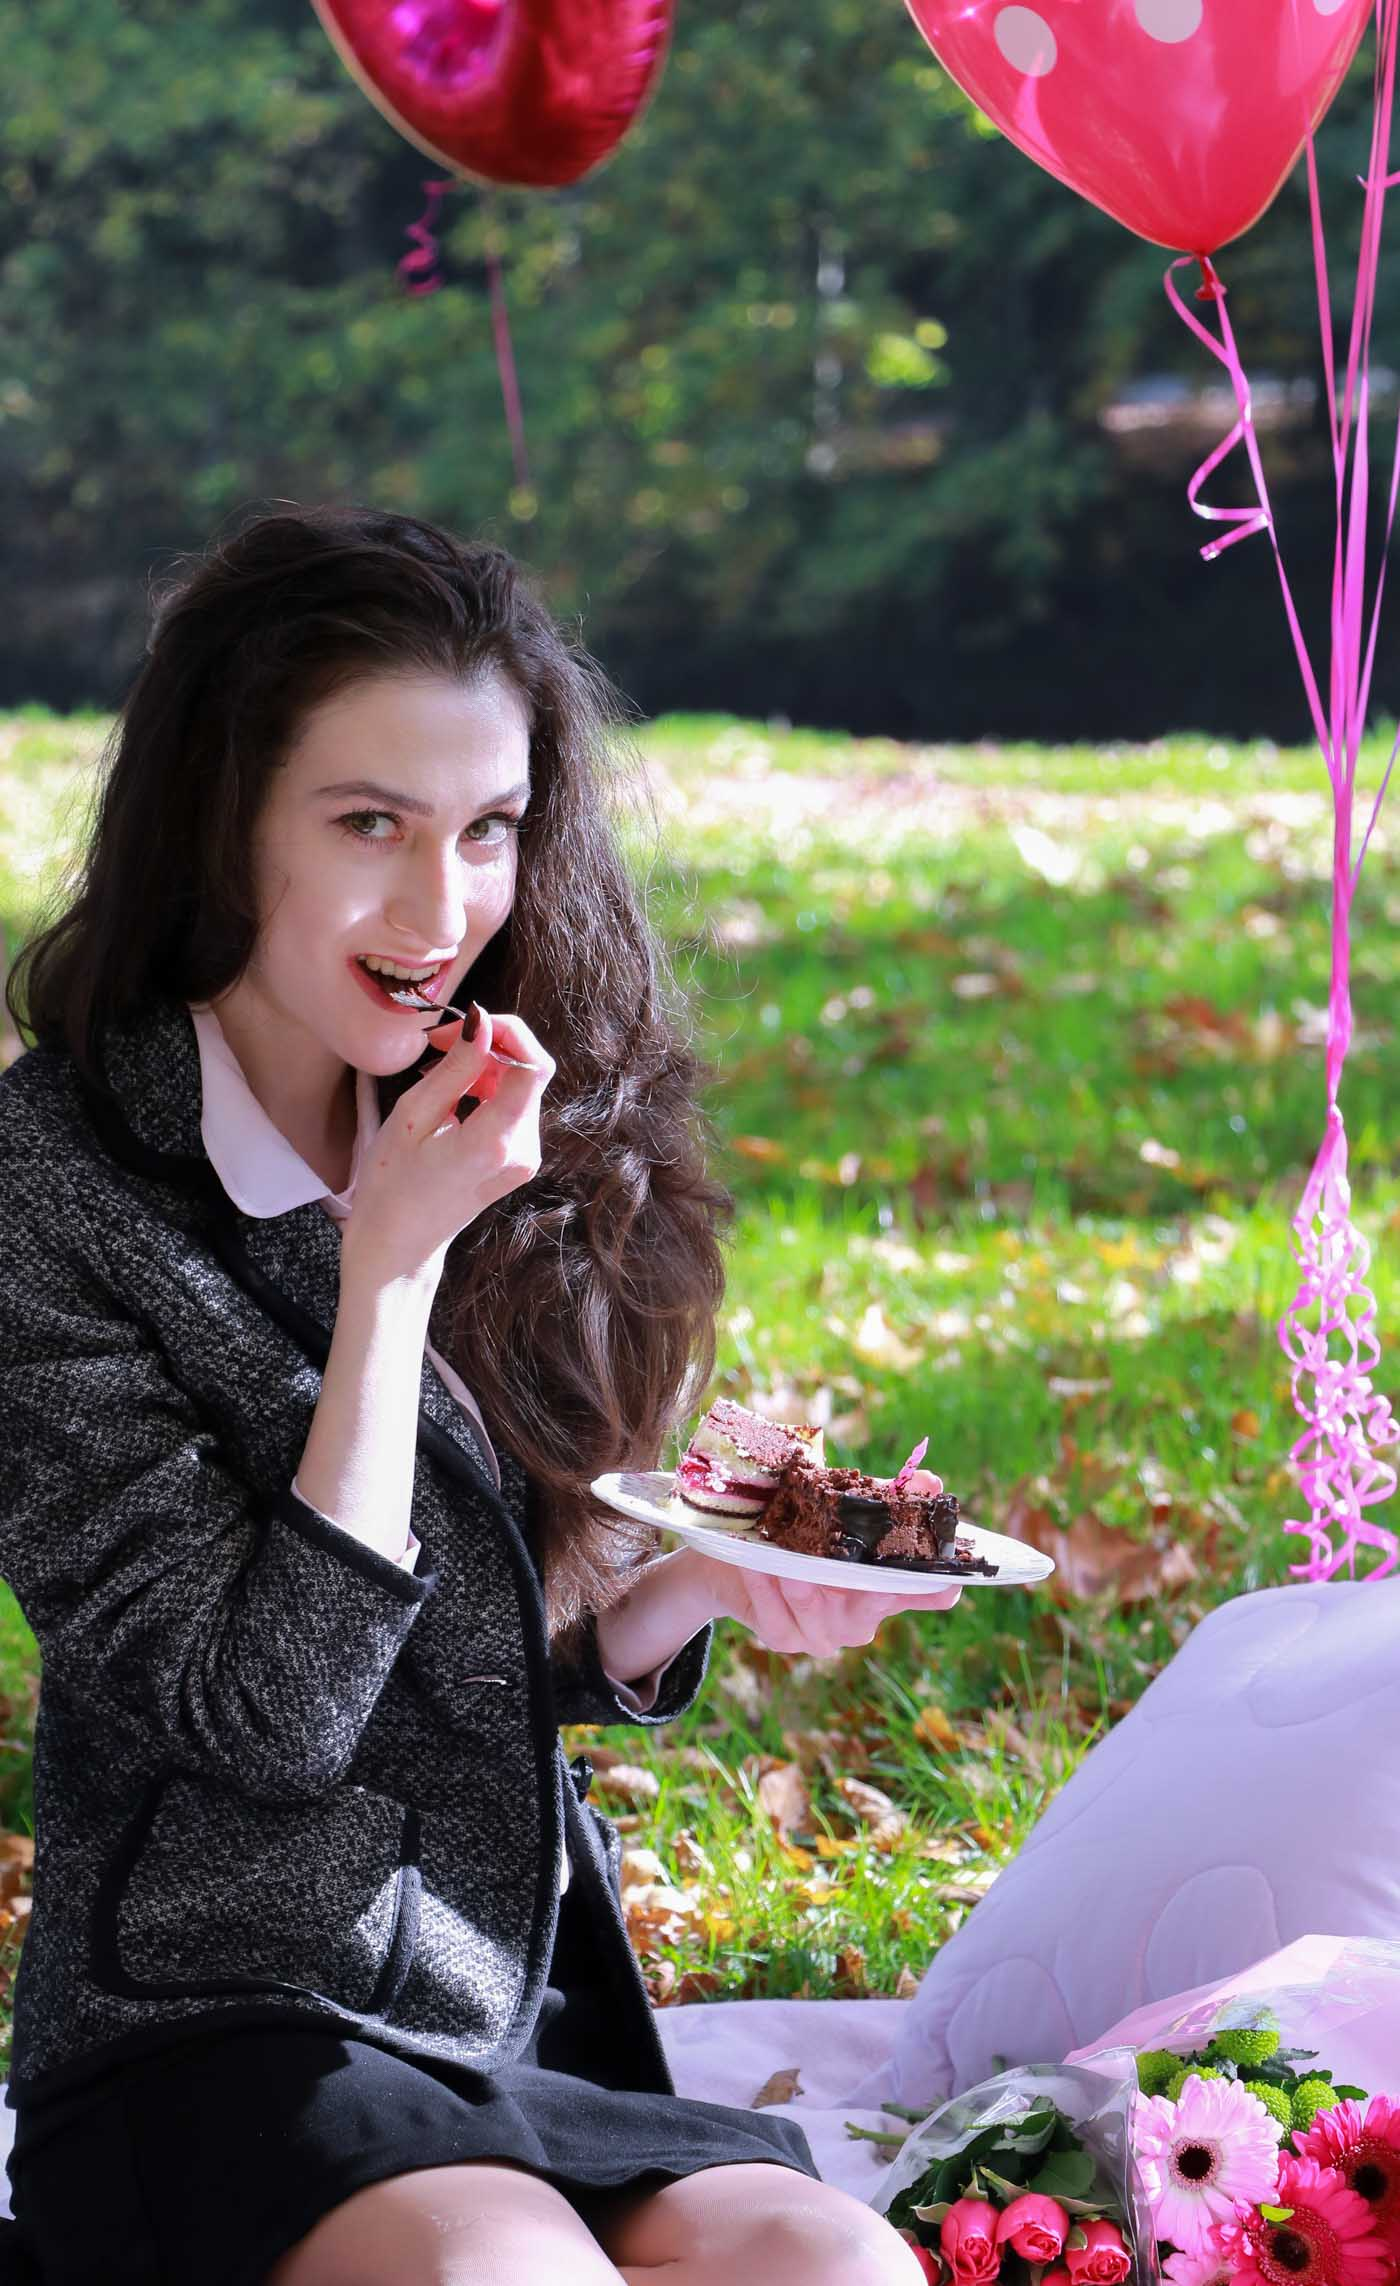 Fashion Blogger Veronika Lipar of Brunette from Wall Street wearing chic mini ruffled skirt, tweed jacket, romantic ruffled pink blouse and sock ankle boots at her birthday picnic